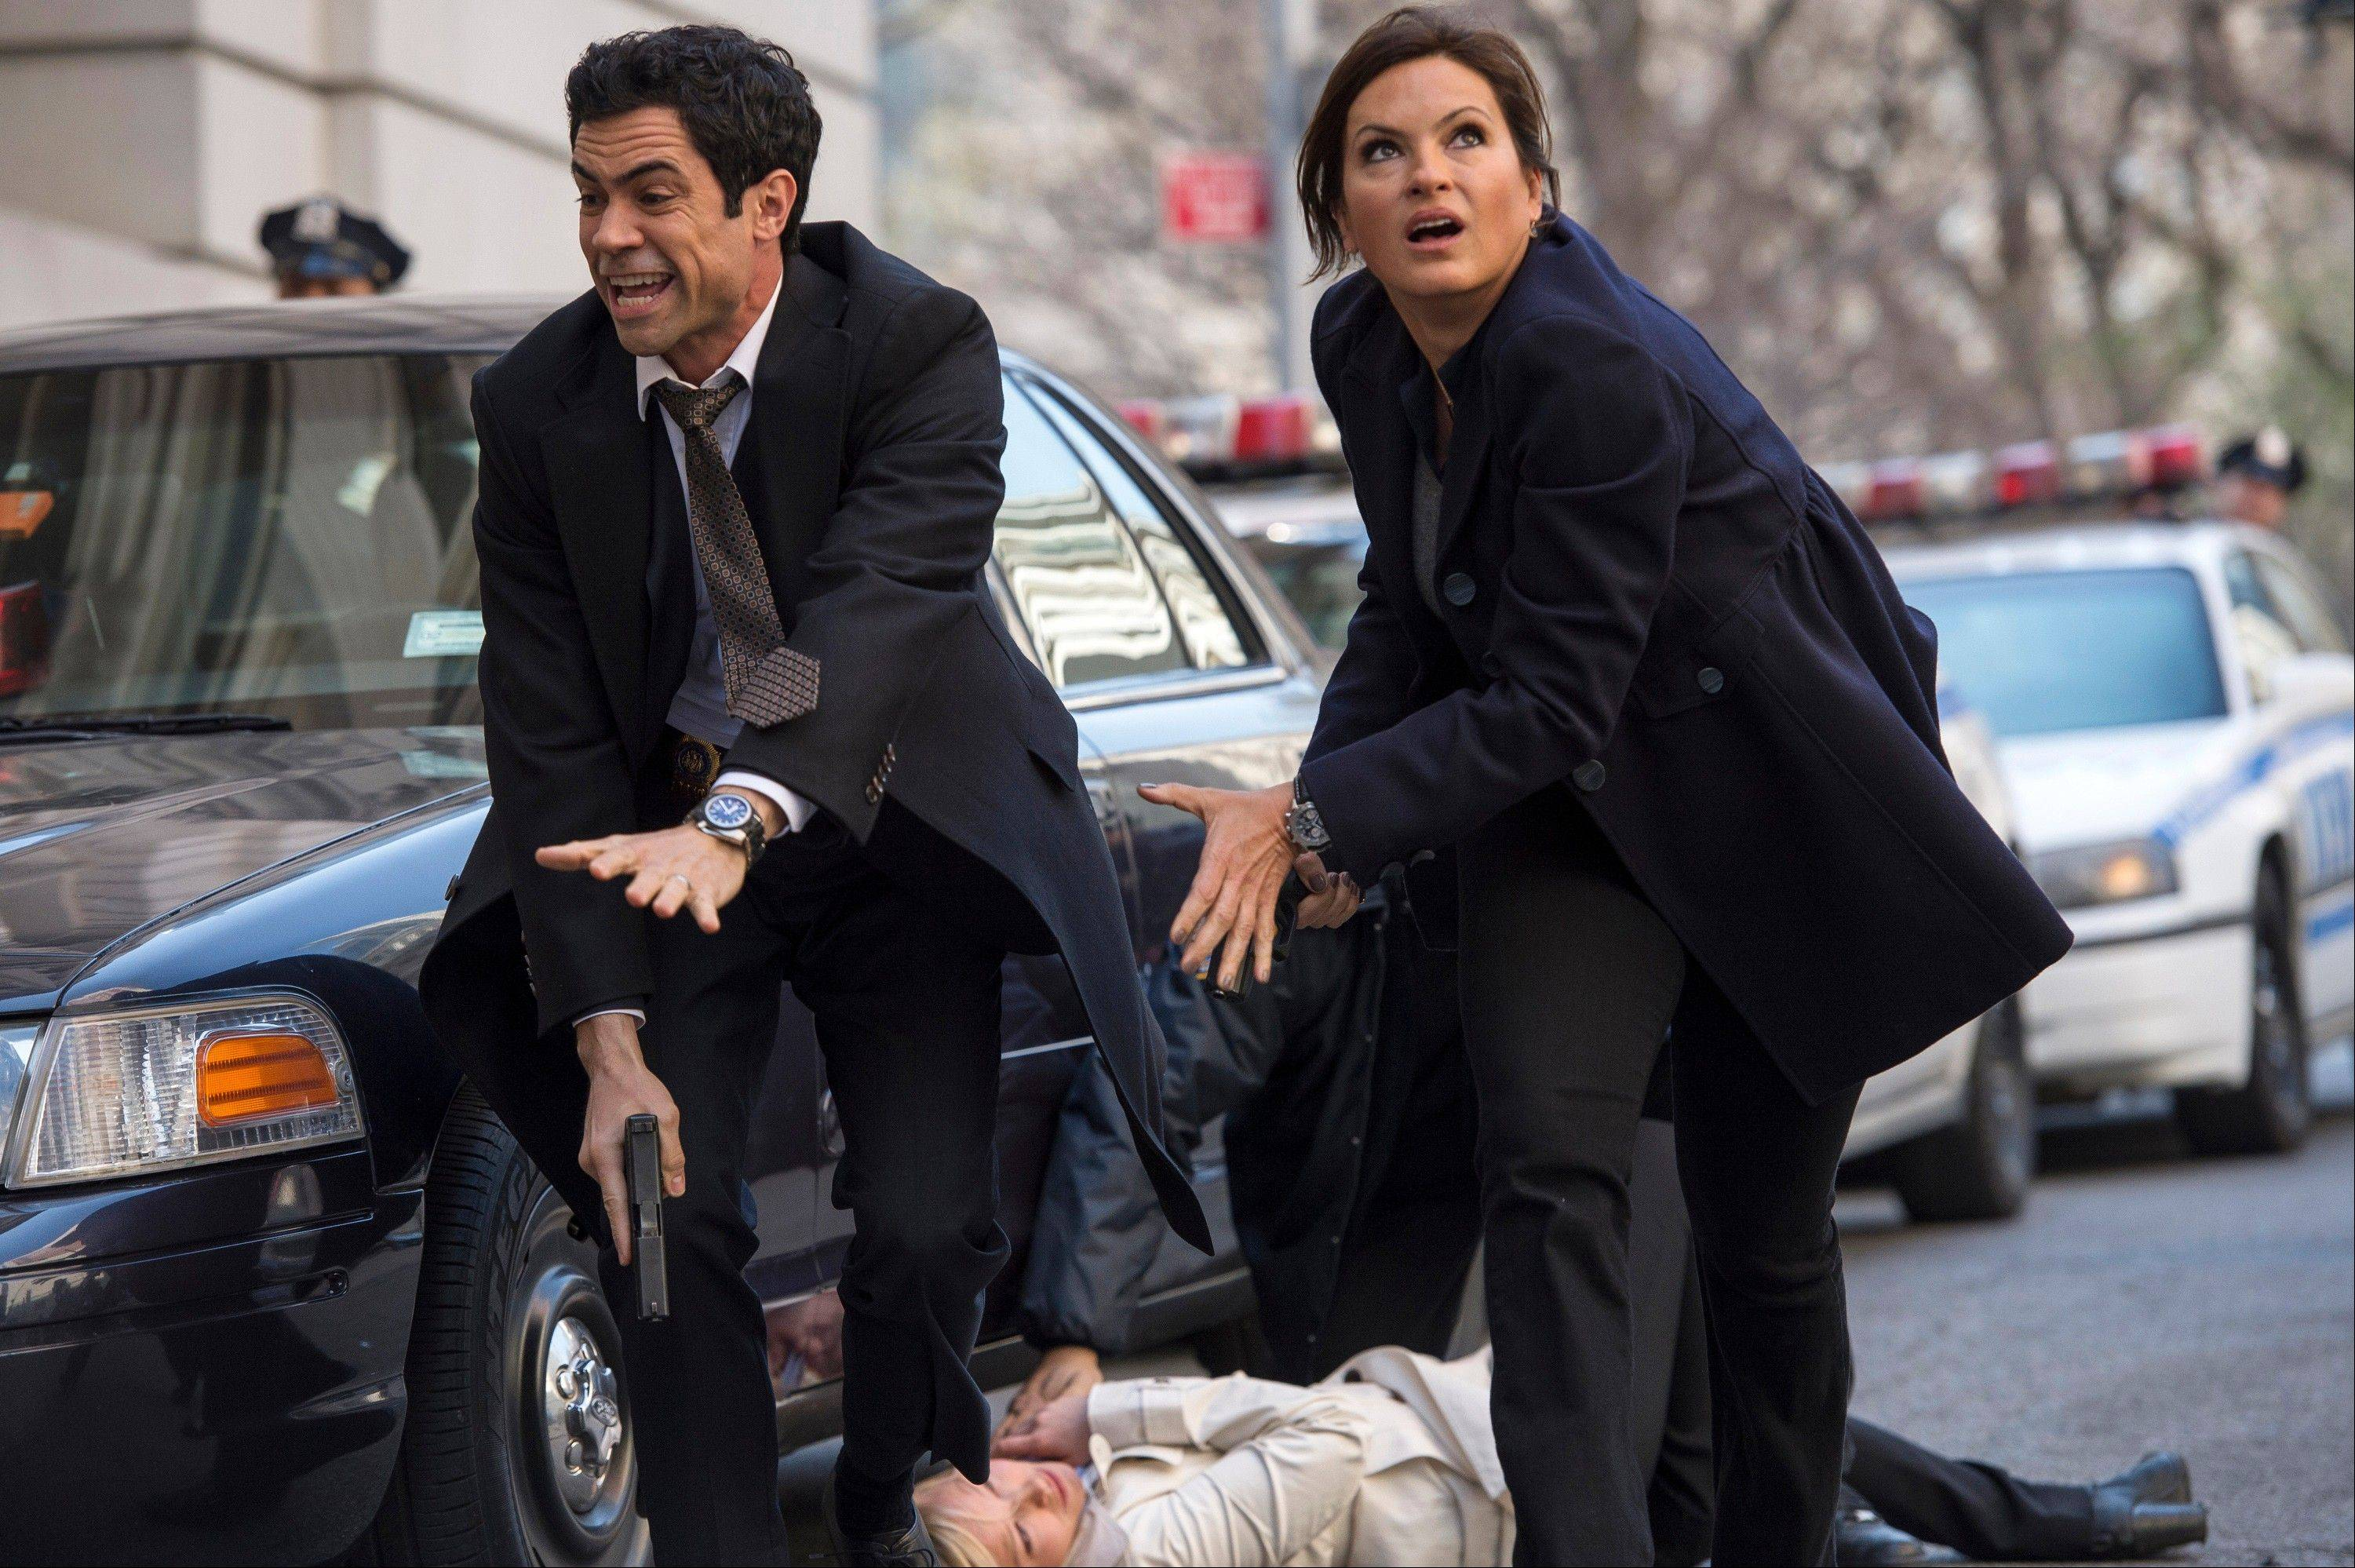 Danny Pino, left, plays Detective Nick Amaro, Kelli Giddish is Detective Amanda Rollins and Mariska Hargitay plays Detective Olivia Benson from season 14 of �Law & Order: Special Victims Unit.� The NBC crime drama returns for its 15th season on Wednesday.